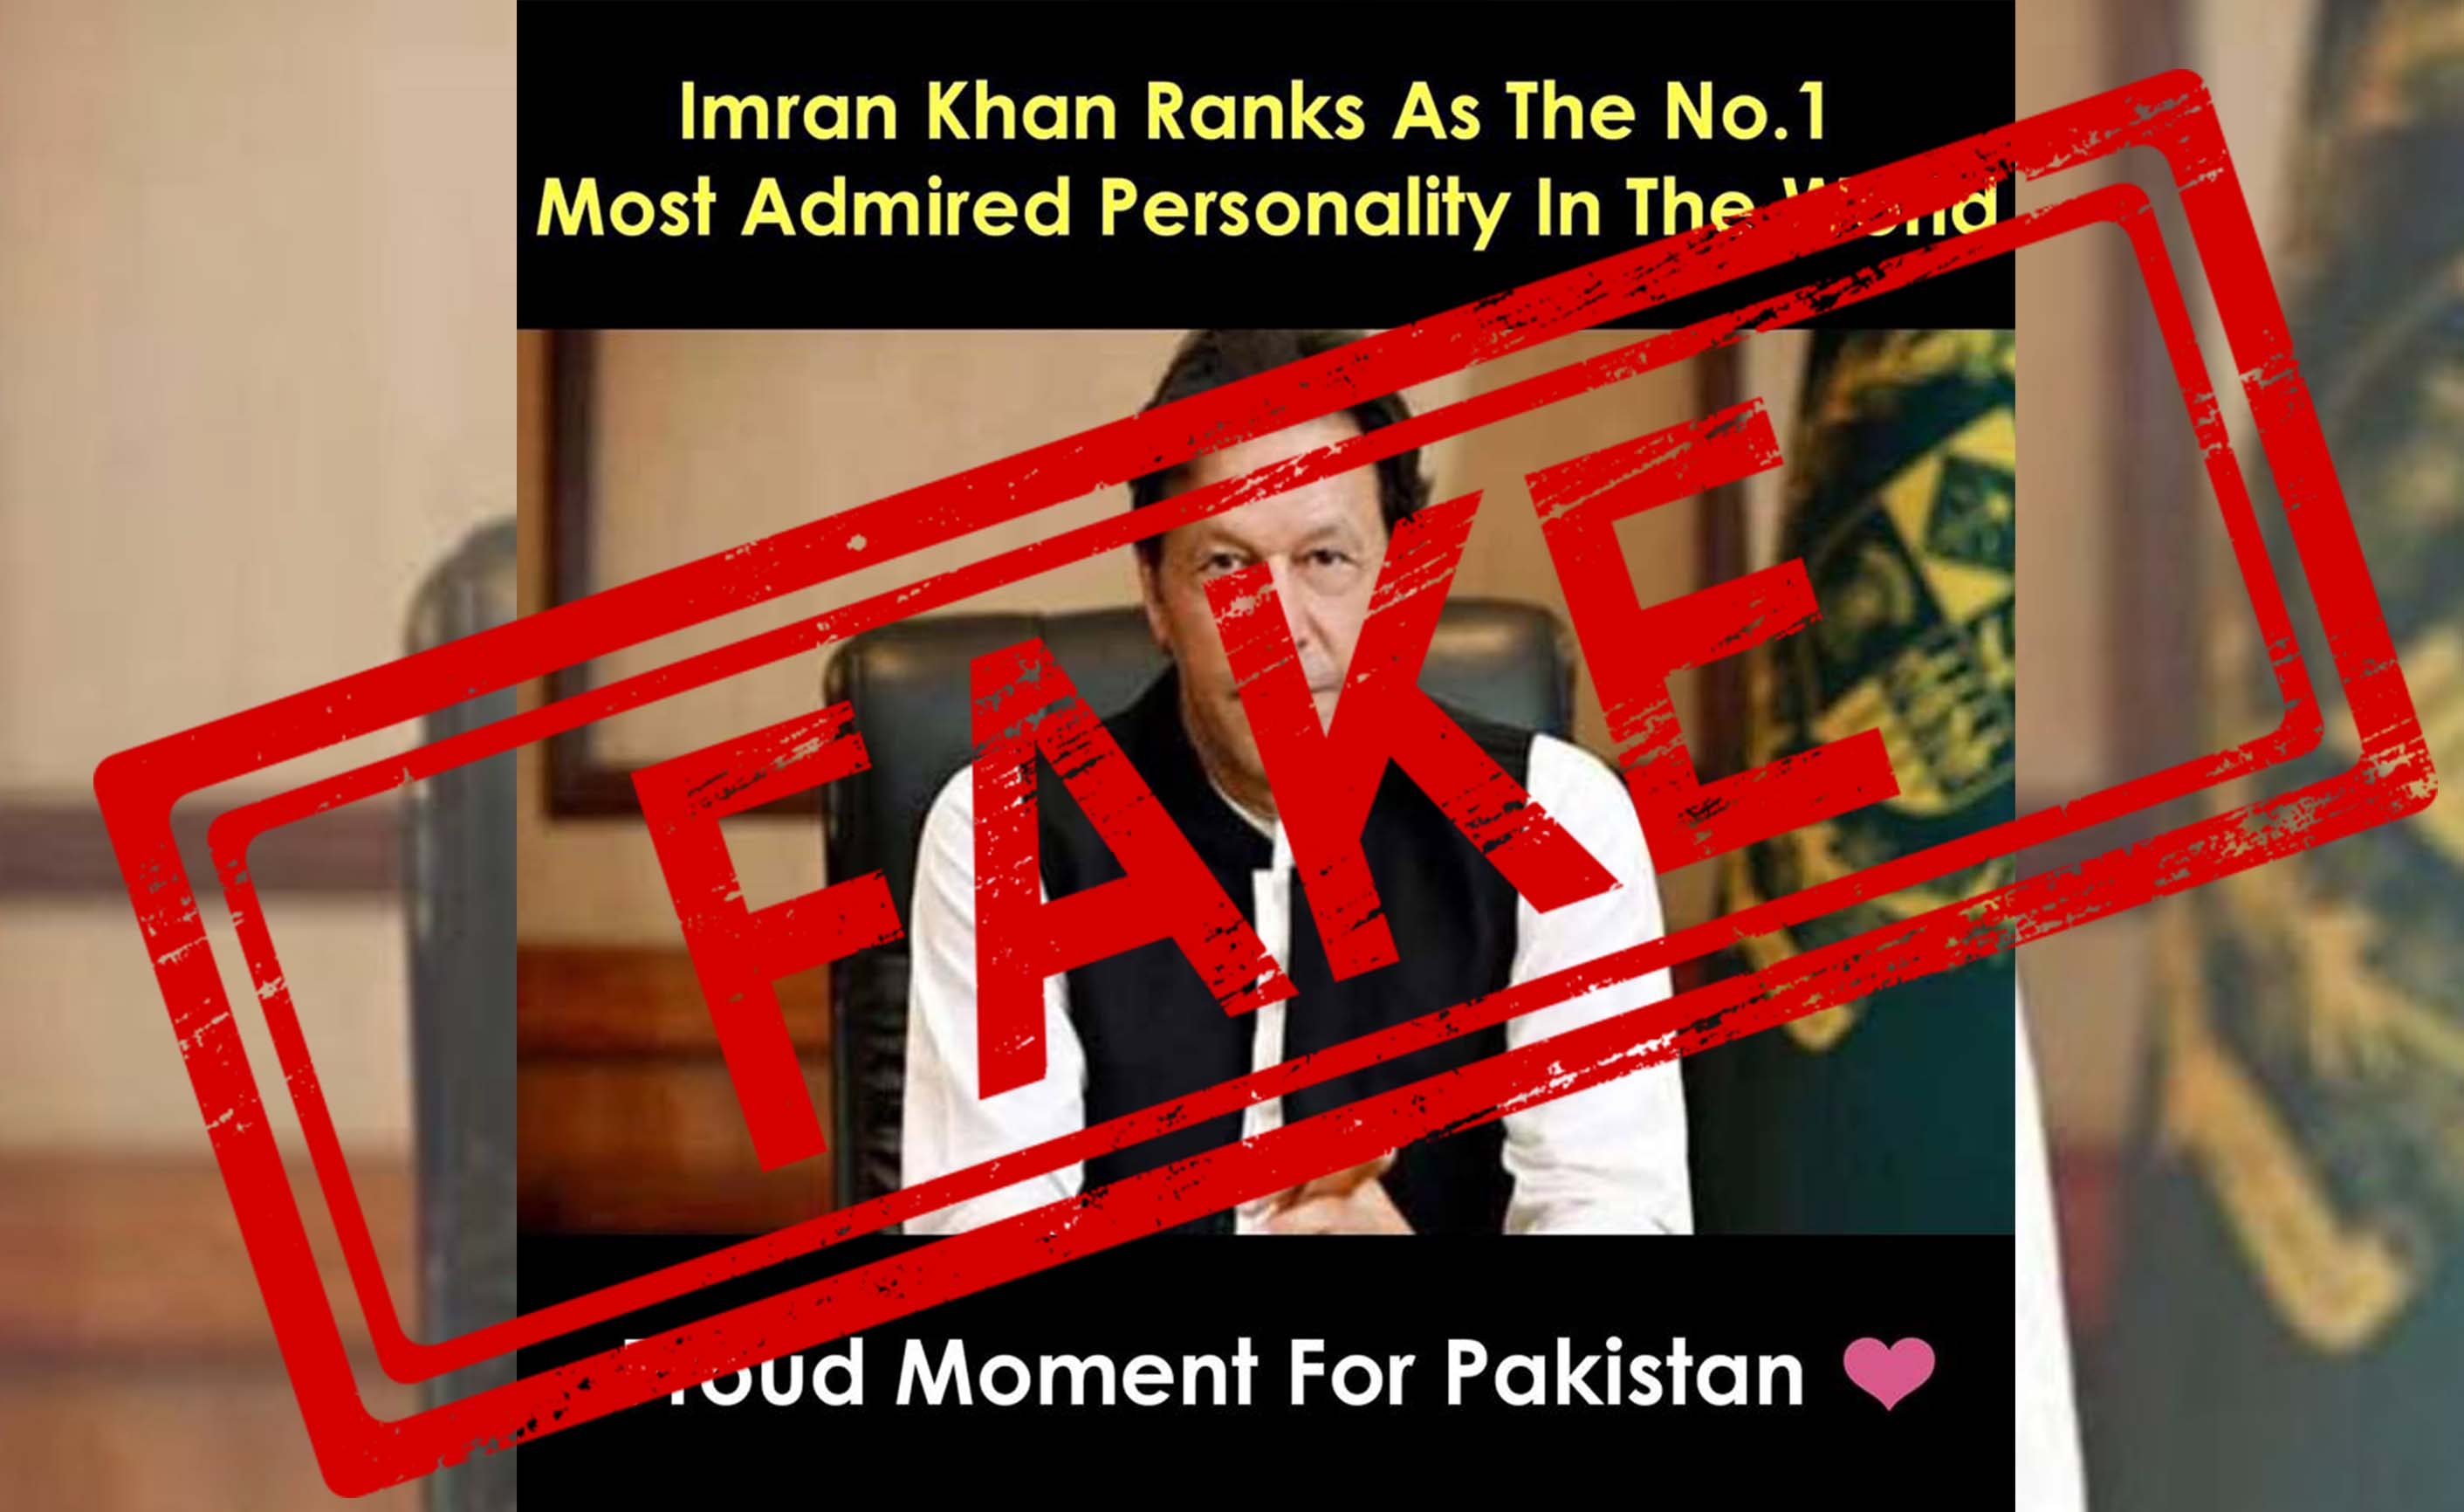 Imran Khan, Pakistan, Prime Minister, Rank, Number 1, most, Admired, List, Narendra Modi, NewsMobile, Mobile, news, India, Fact Check, FactChecker, Fake